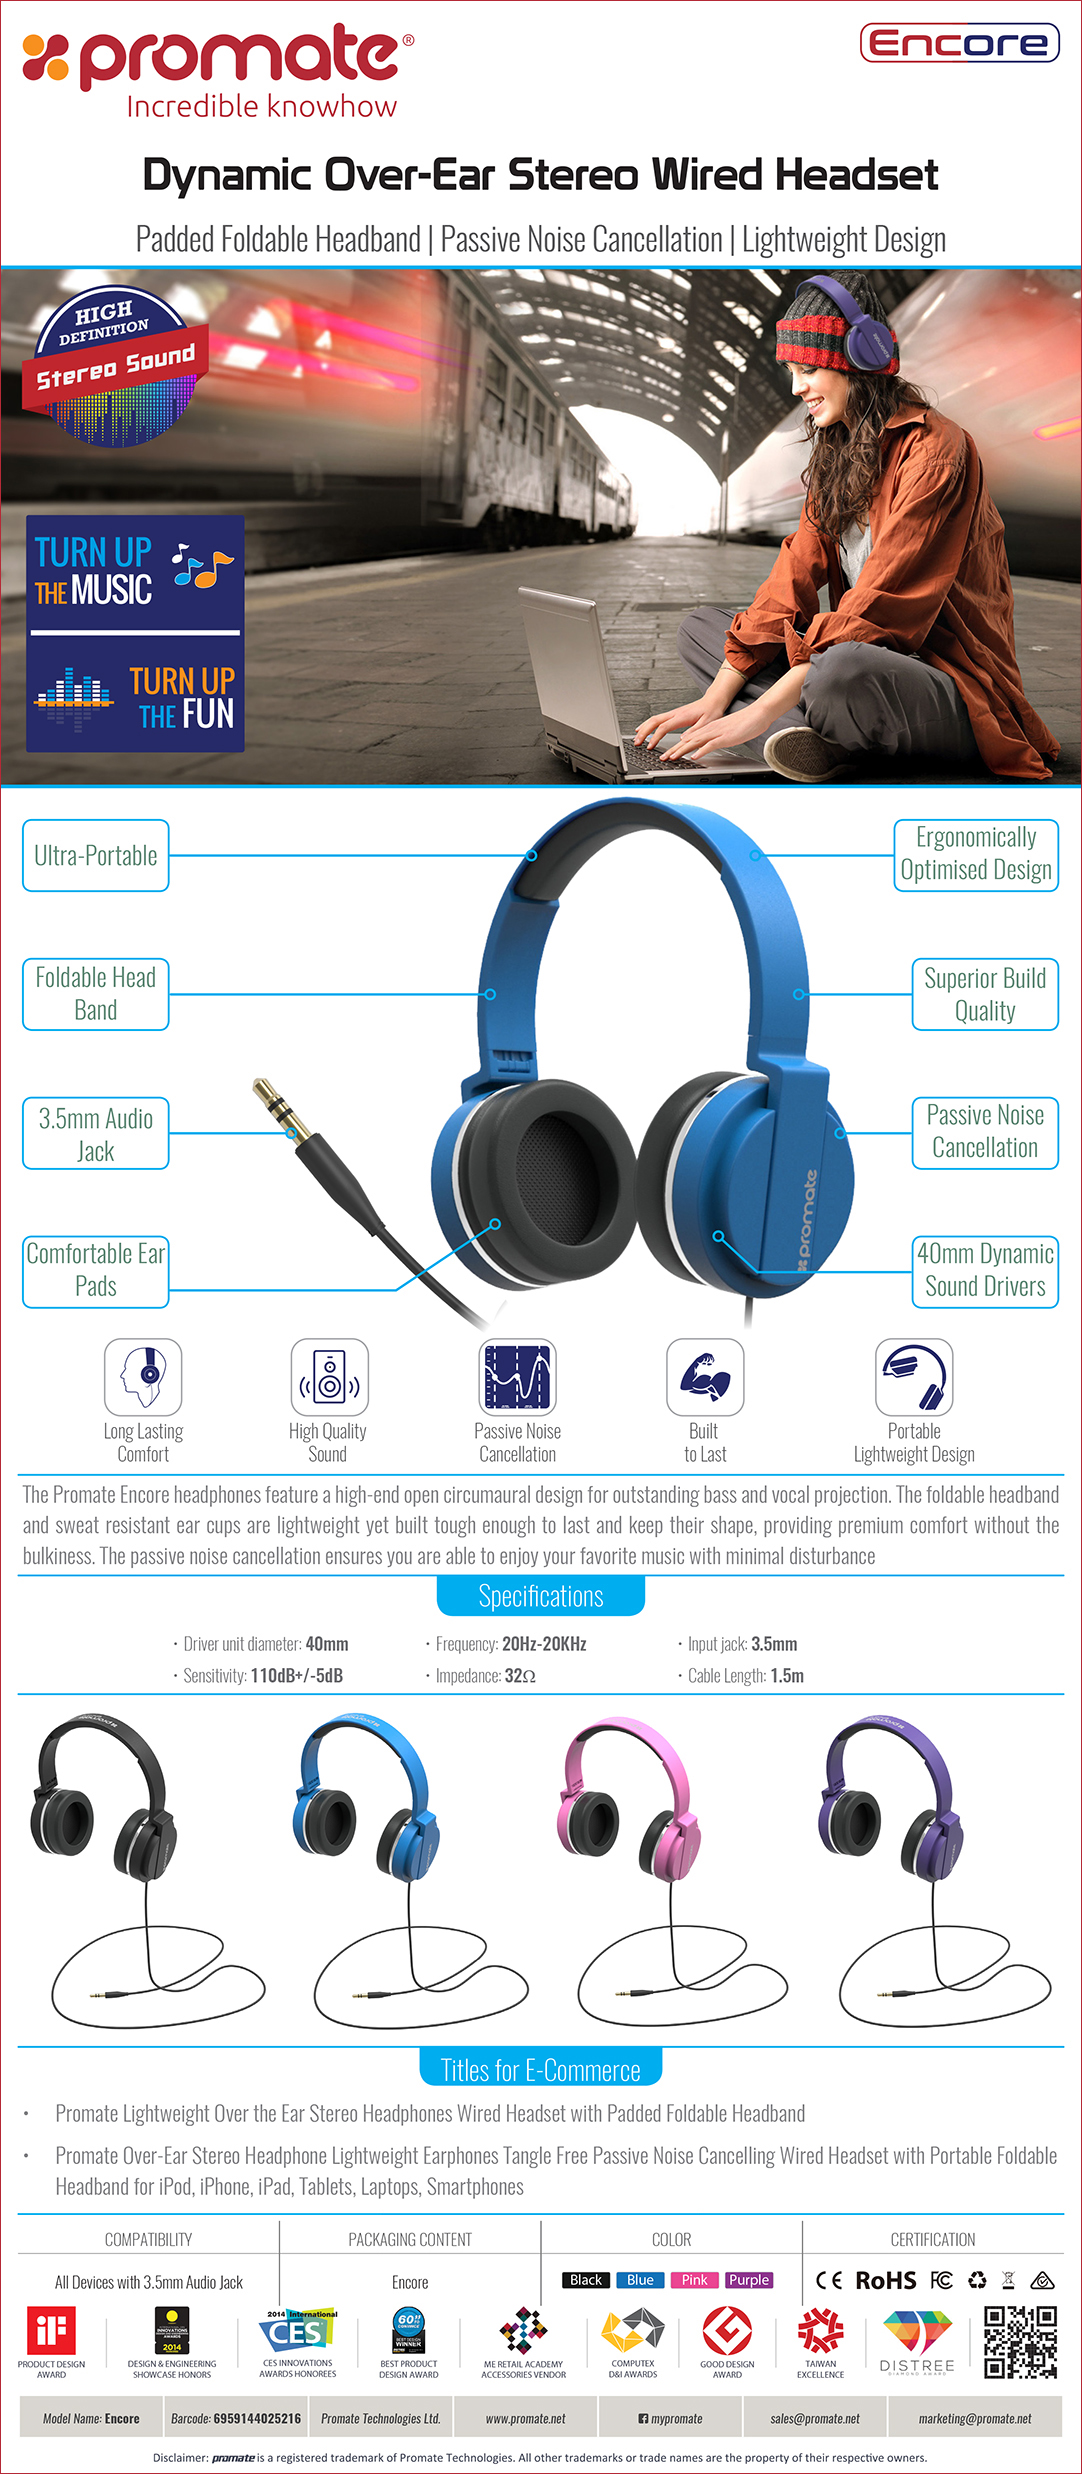 95d2cec4119 The Promate Encore headphones feature a high-end open circumaural design  for outstanding bass and vocal projection. The foldable headband and sweat  ...